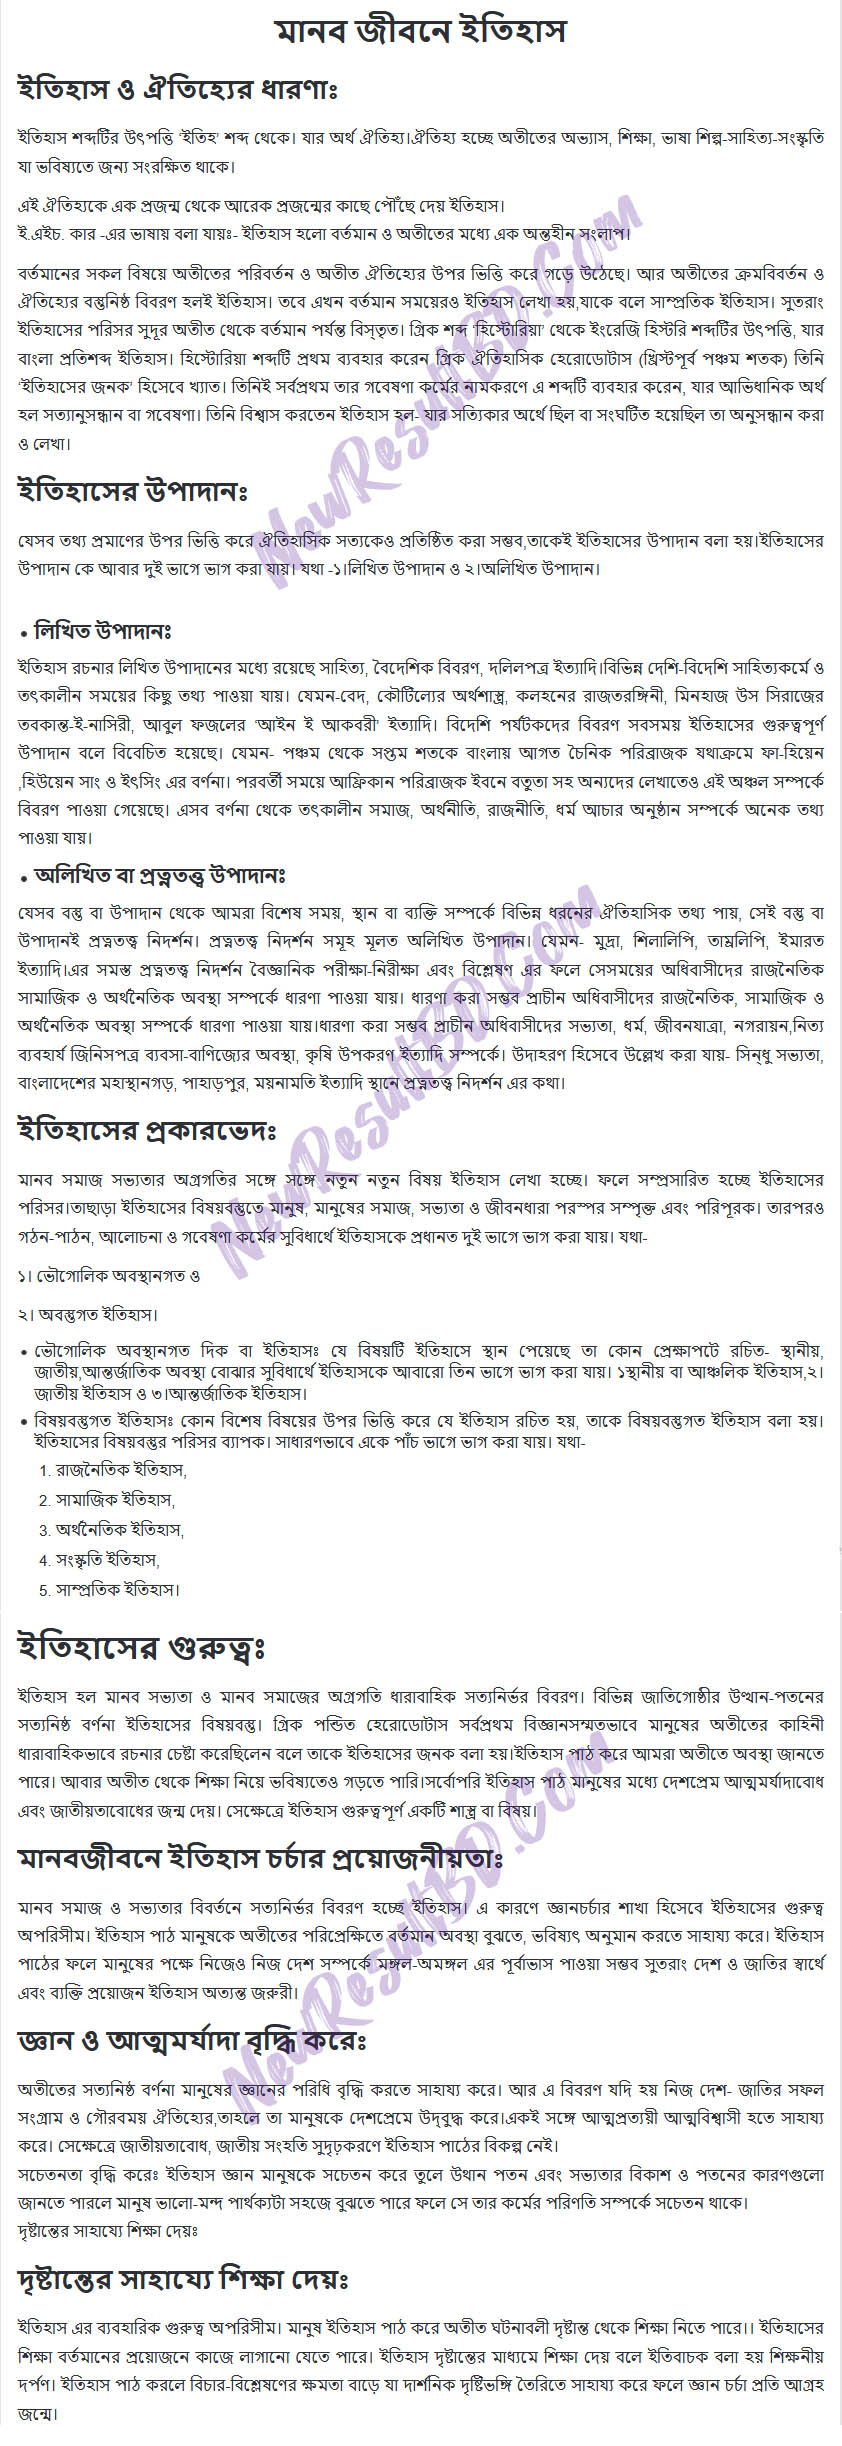 SSC History of Bangladesh and World Civilization Assignment 2021 Answer